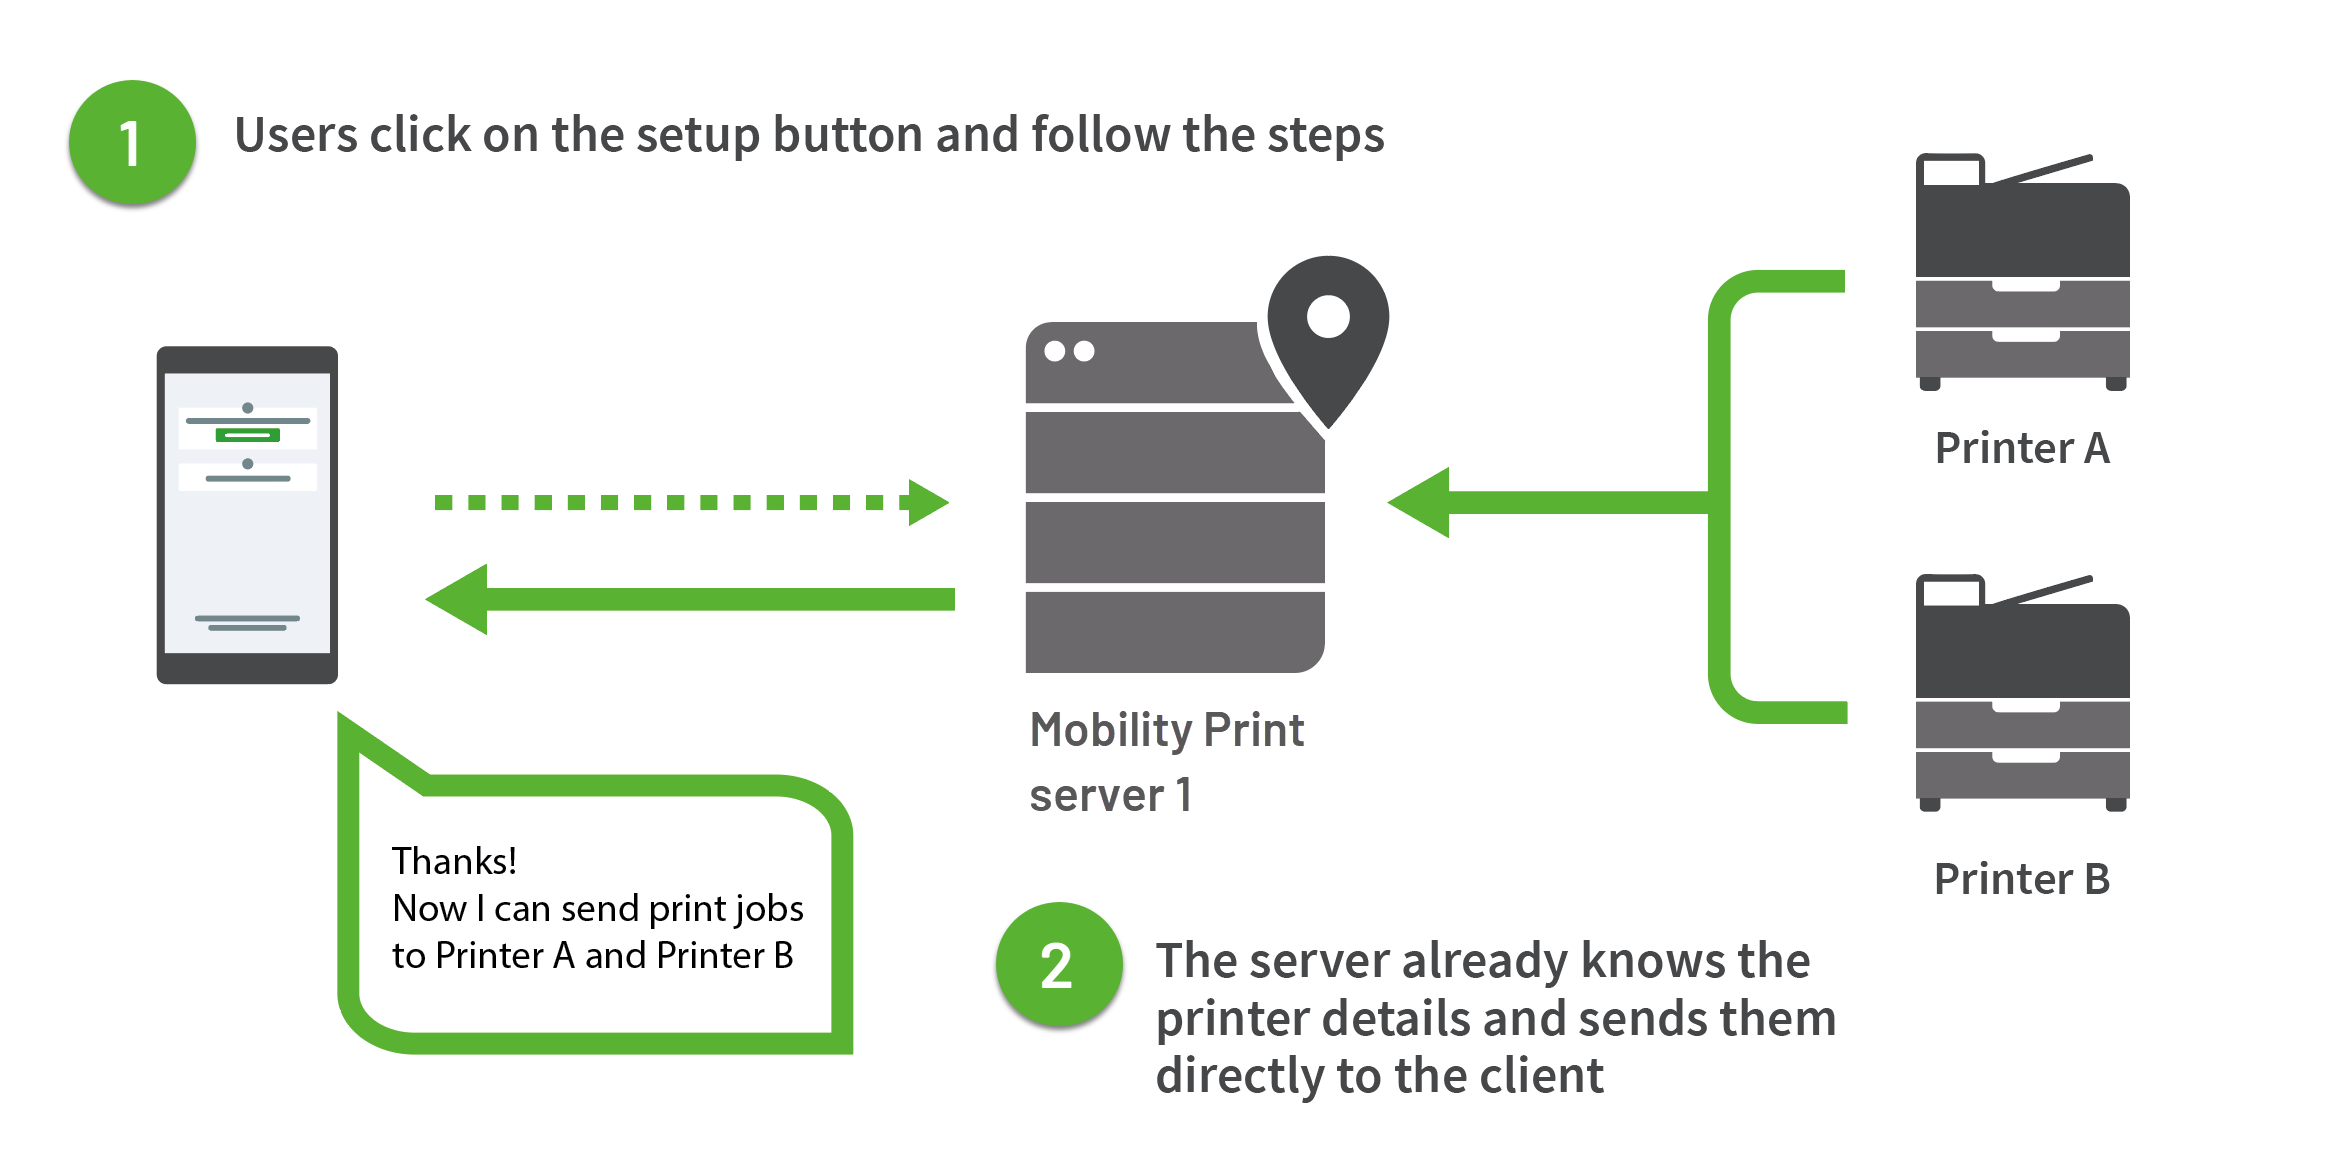 On the right, two printers are connected to a Mobility Print server in the middle of the image. As soon as the client on the let connects to the server, the server can reply with the printer details. The client can then send print jobs straight away.